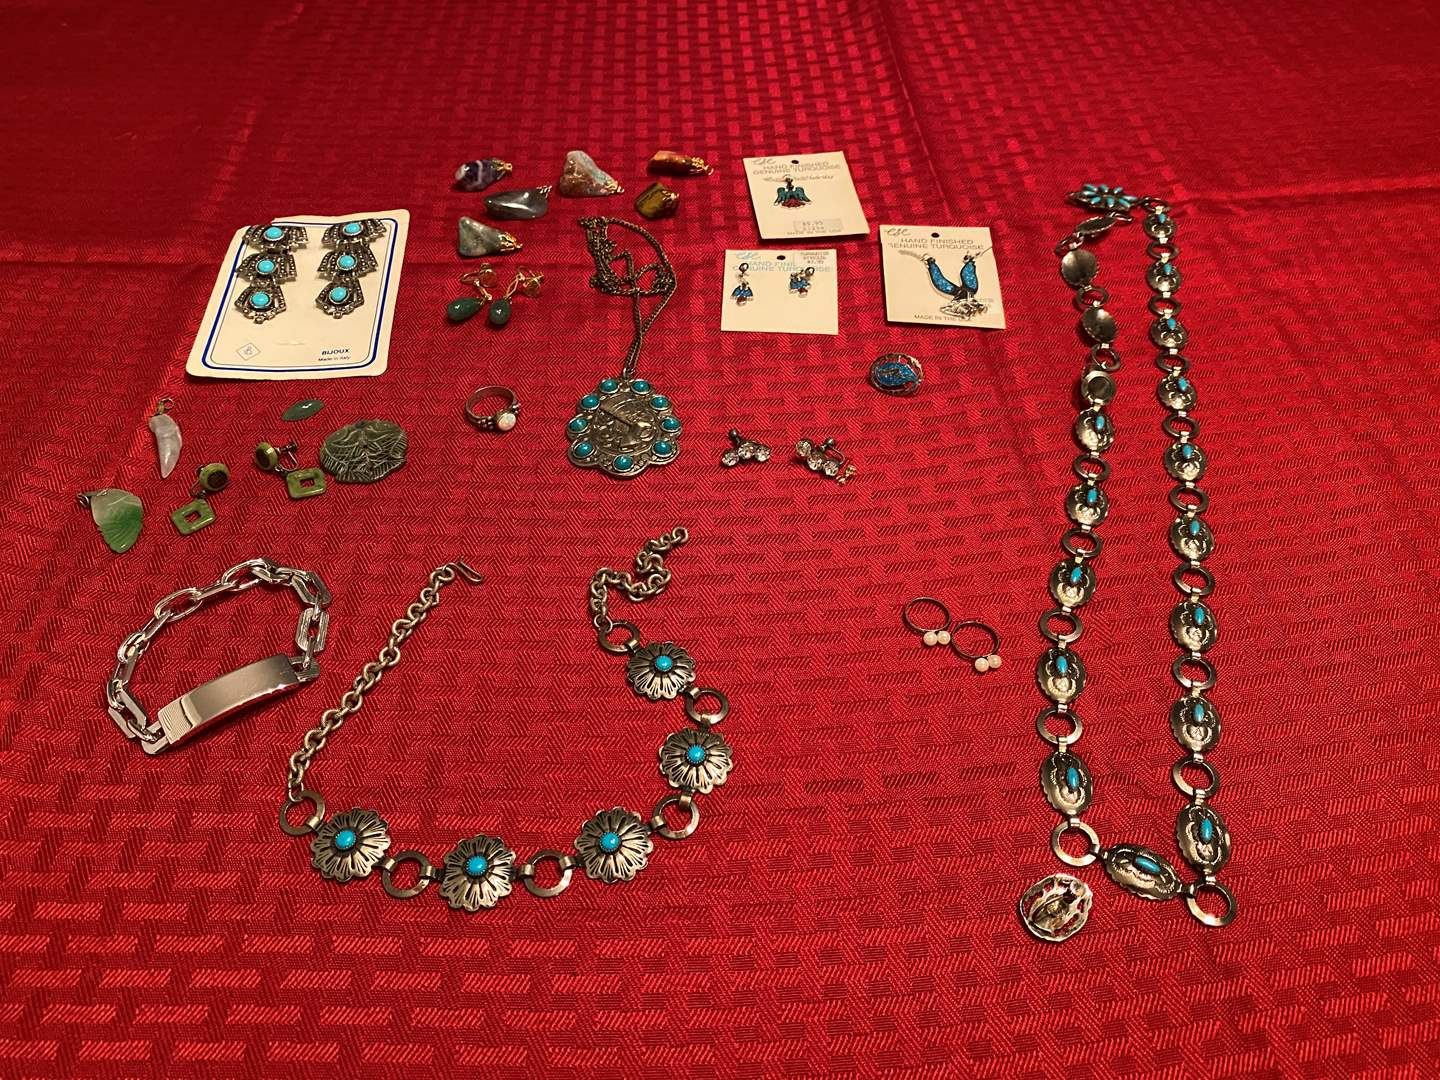 Lot # 288 - Two Small Silver Pearl Rings, Jade, Turquoise, Swank Bracelet, Rock Pendants & More. (main image)